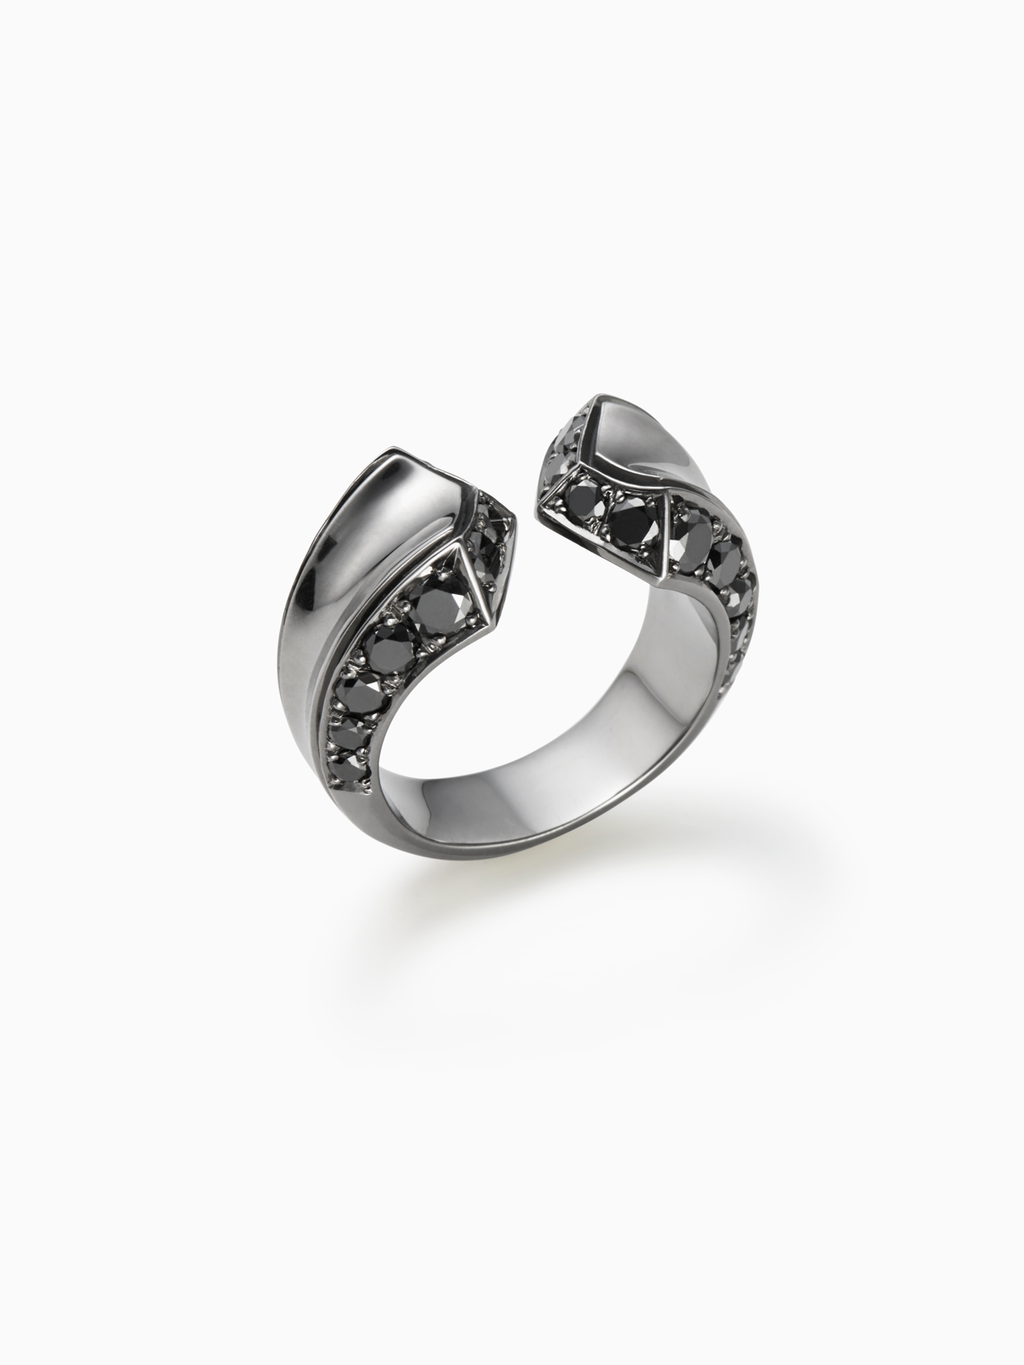 Crious L / Ring / Diamond / Silver